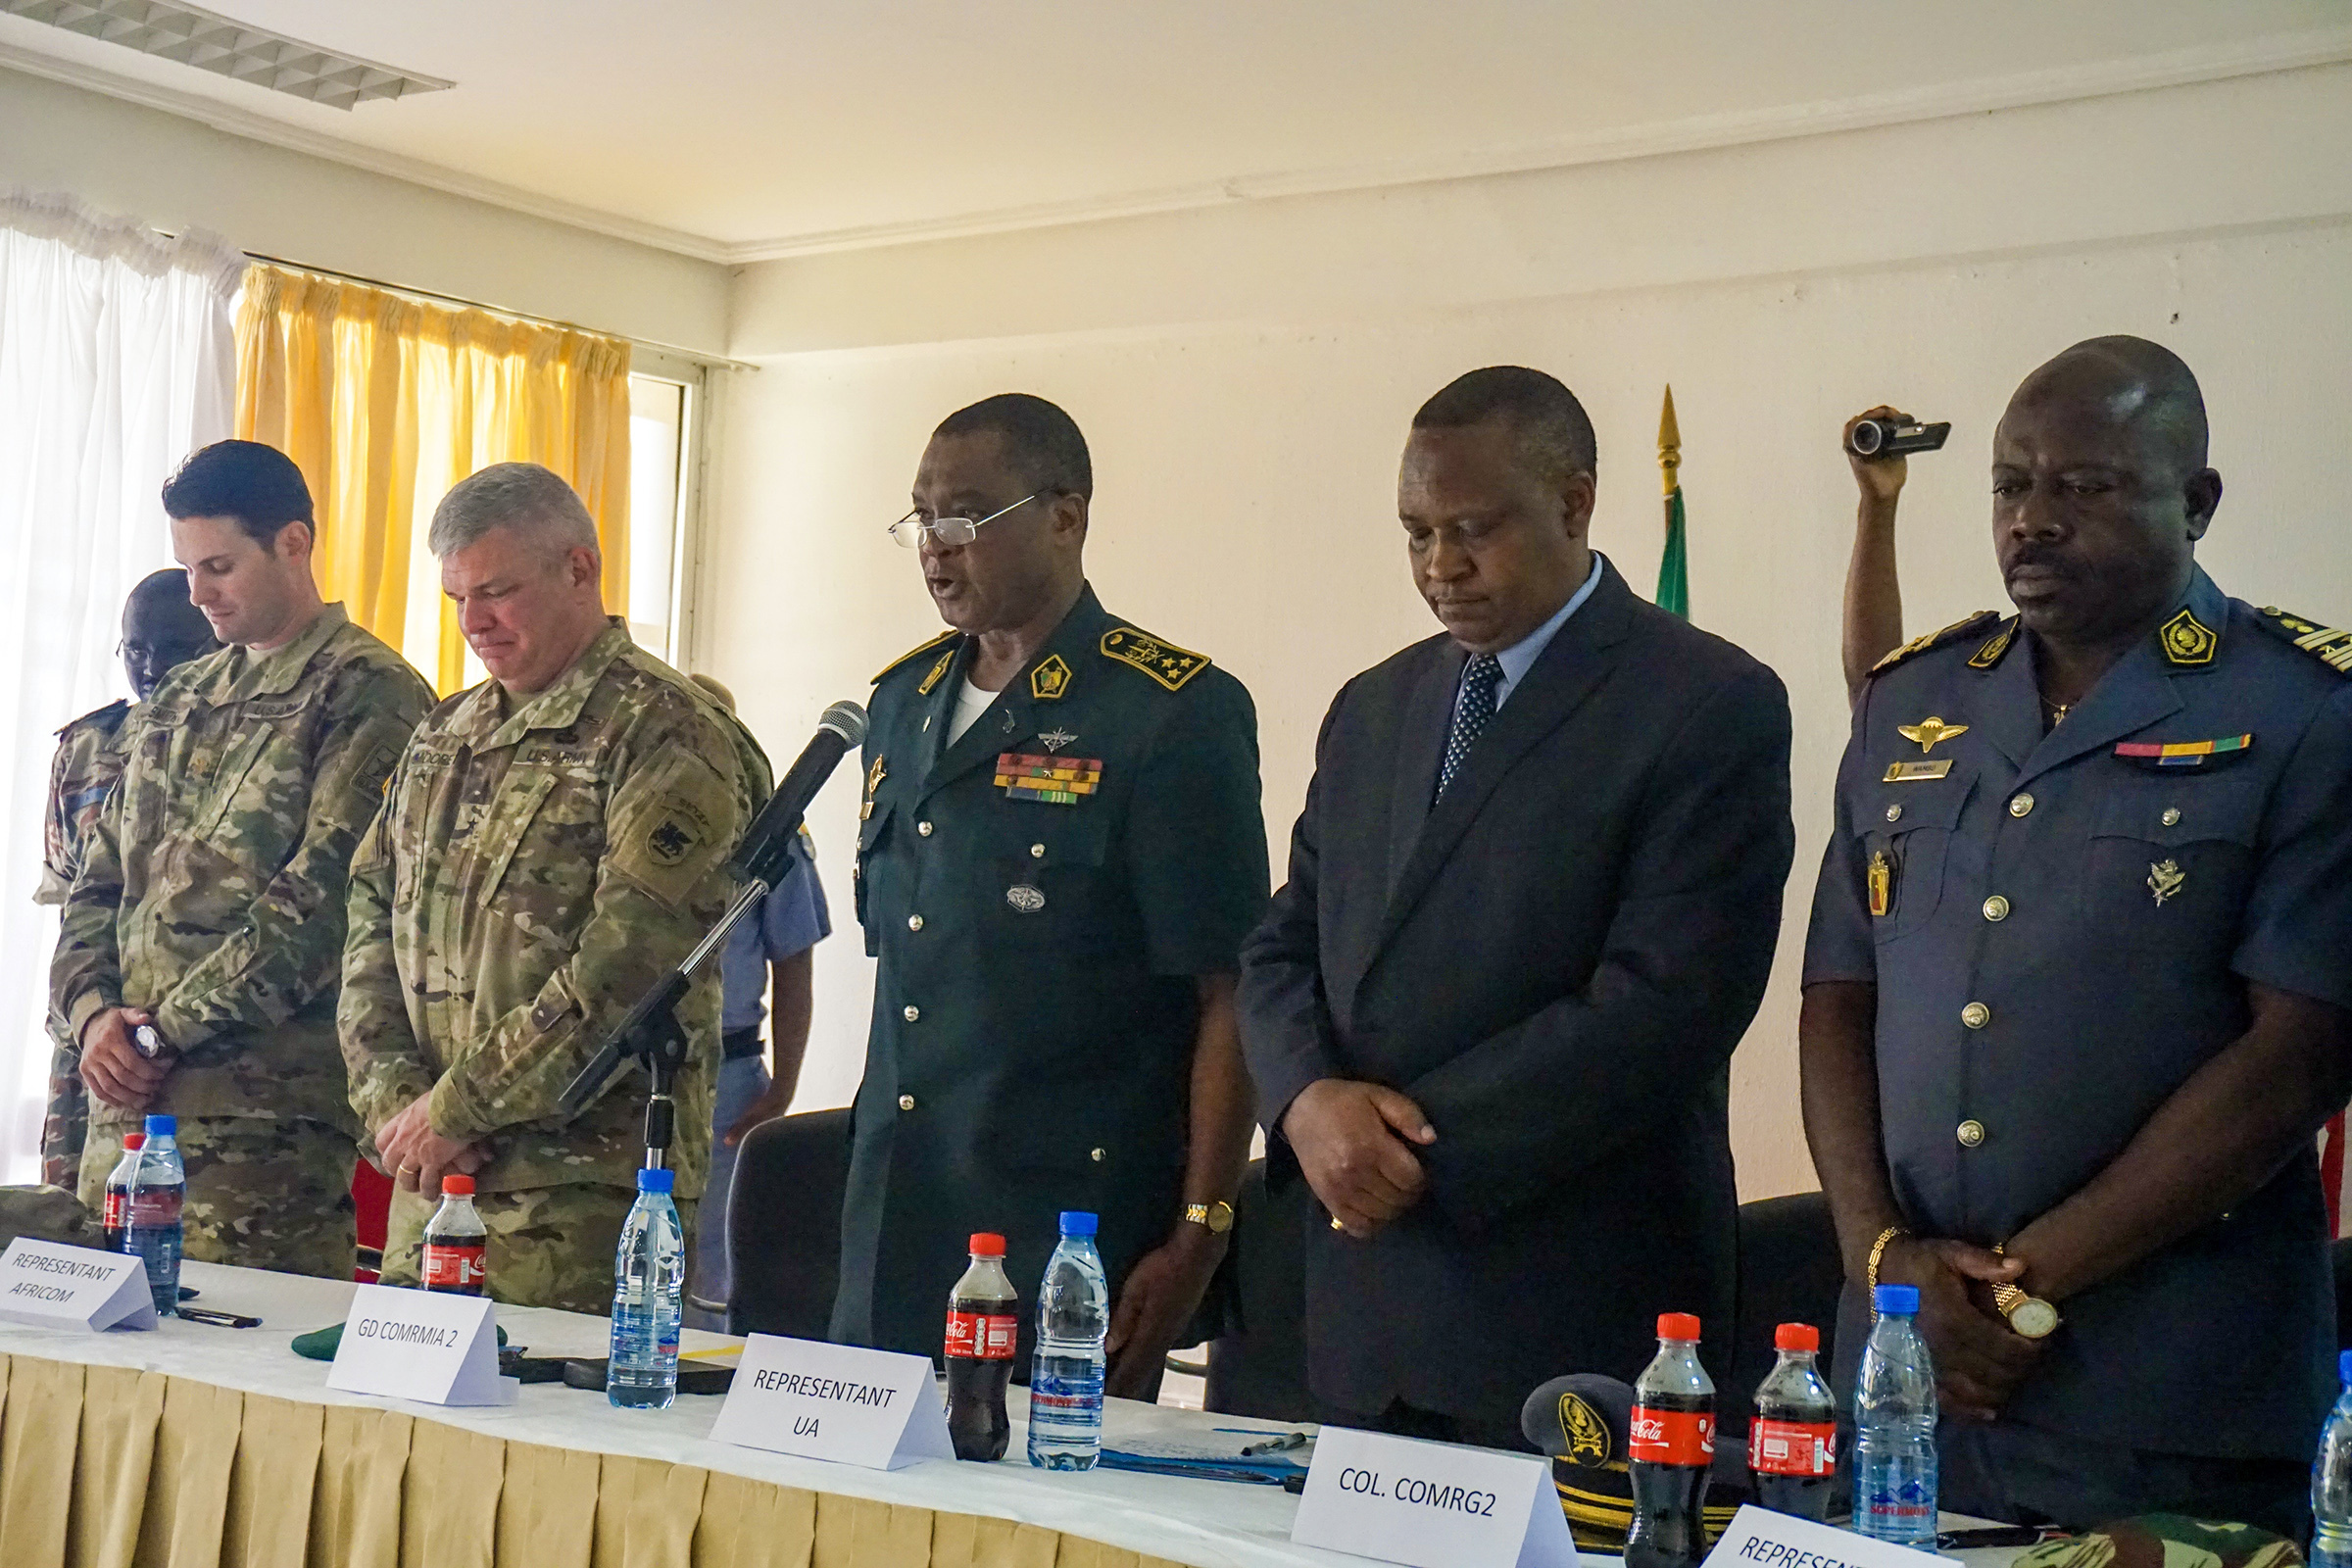 Senior representatives from the U.S. and Cameroon share a moment of silence for the recent loss of Cameroonian Brig. Gen. Jacob Kodji and three officers in a helicopter crash during the opening ceremony for the Unified Focus 2017 final planning event (FPE), Douala, Cameroon, Feb. 6, 2017. The UF17 FPE brought partner nation planners together to discuss and shape the inaugural Unified Focus exercise designed to enhance and enable Lake Chad Basin Commission.  (U.S. Army Africa photo by Capt. Jason Welch/Released)